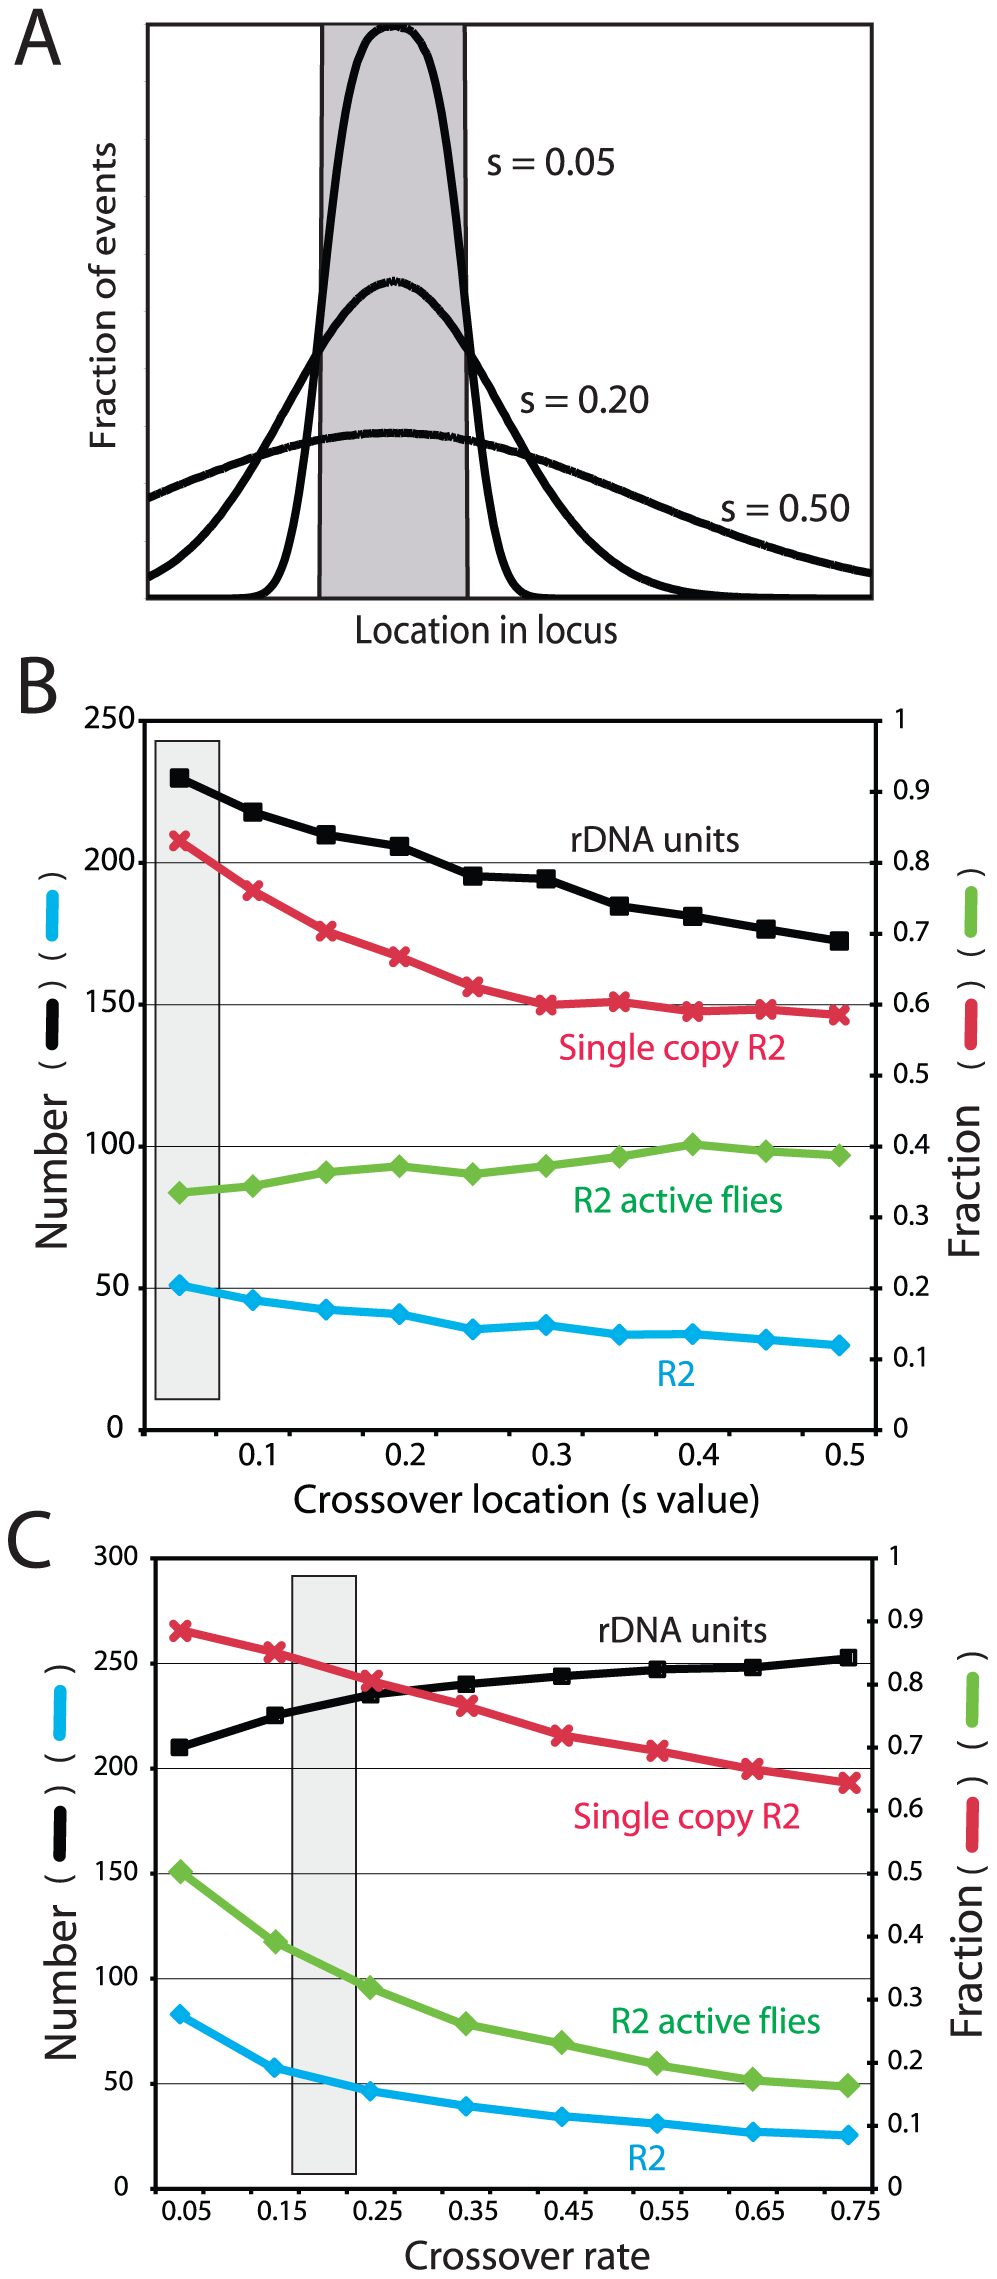 Effects of varying crossover location and crossover frequency on the properties of the simulated rDNA loci.